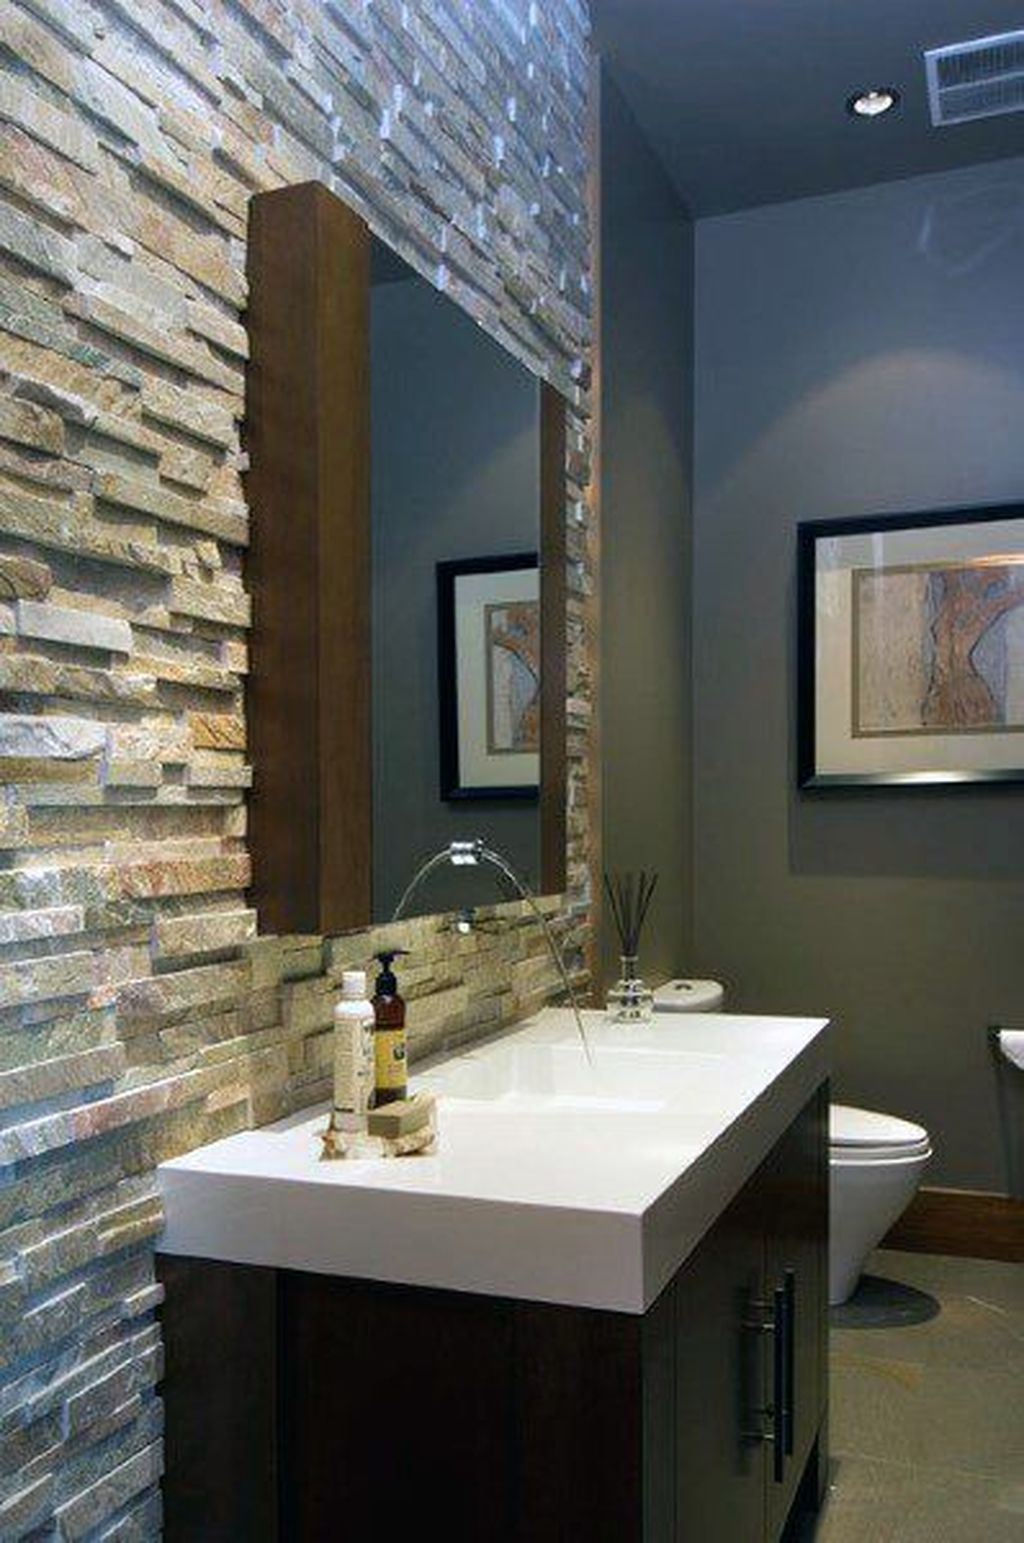 The Best Stone Tile Bathroom Ideas To Decorate Your Bathroom 35